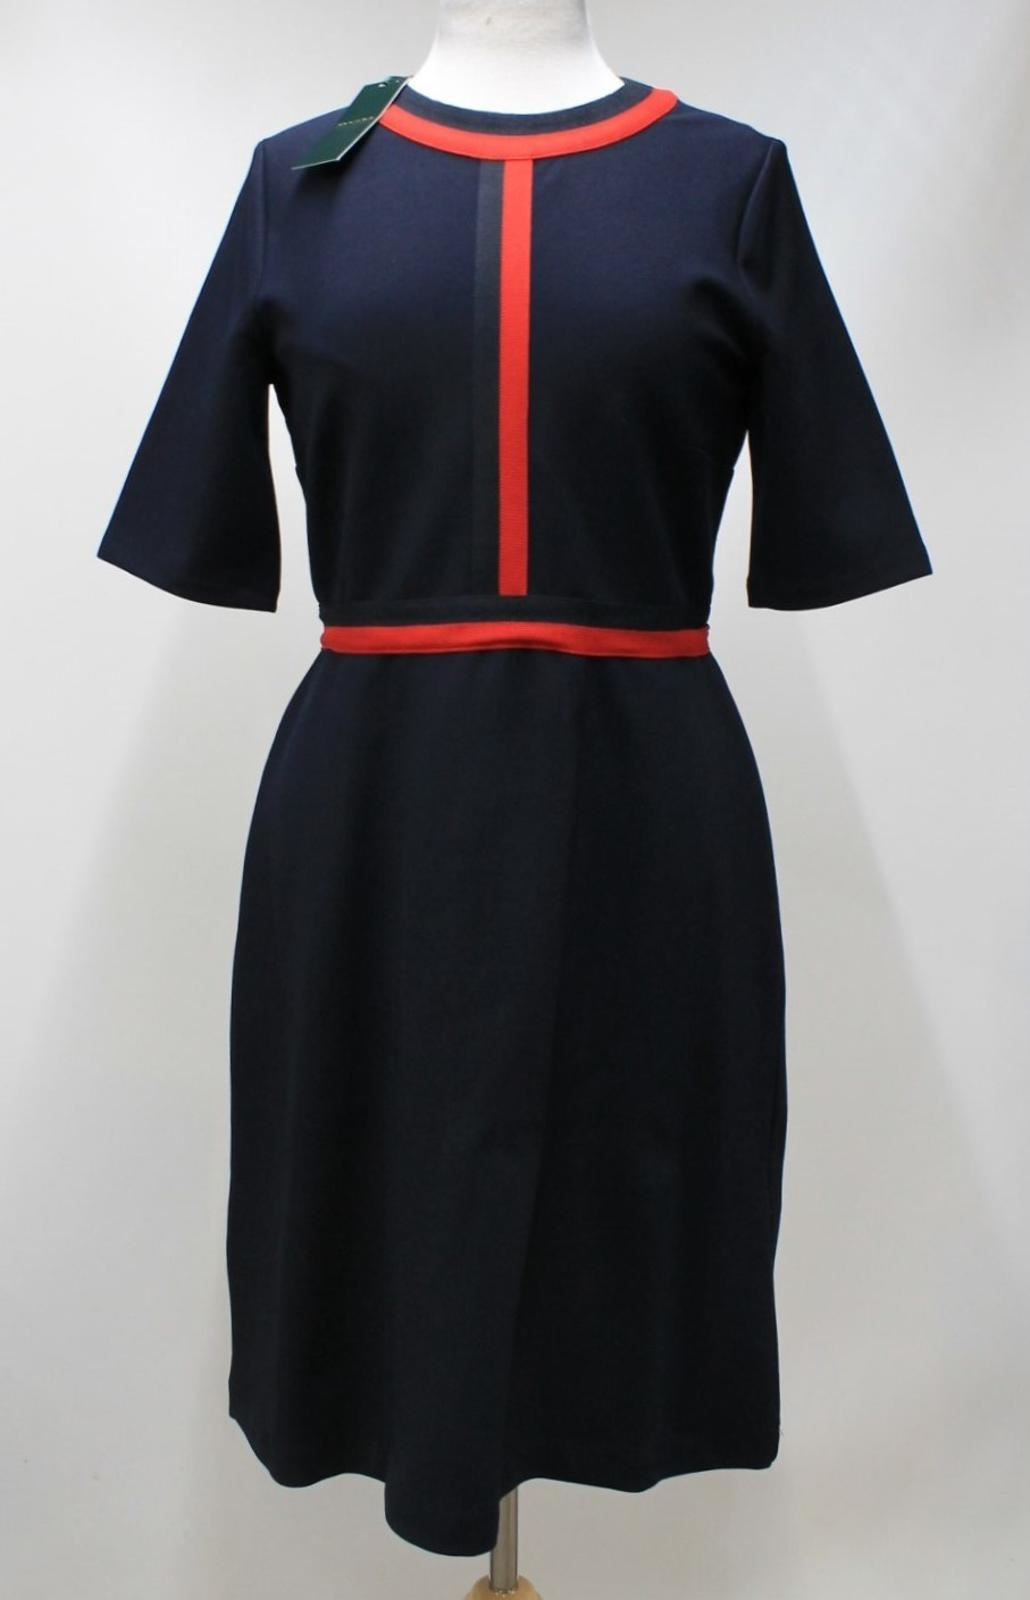 HOBBS-Ladies-Delia-Navy-Red-Stripe-Elbow-Sleeve-Crew-Neck-Shift-Dress-UK12-NEW